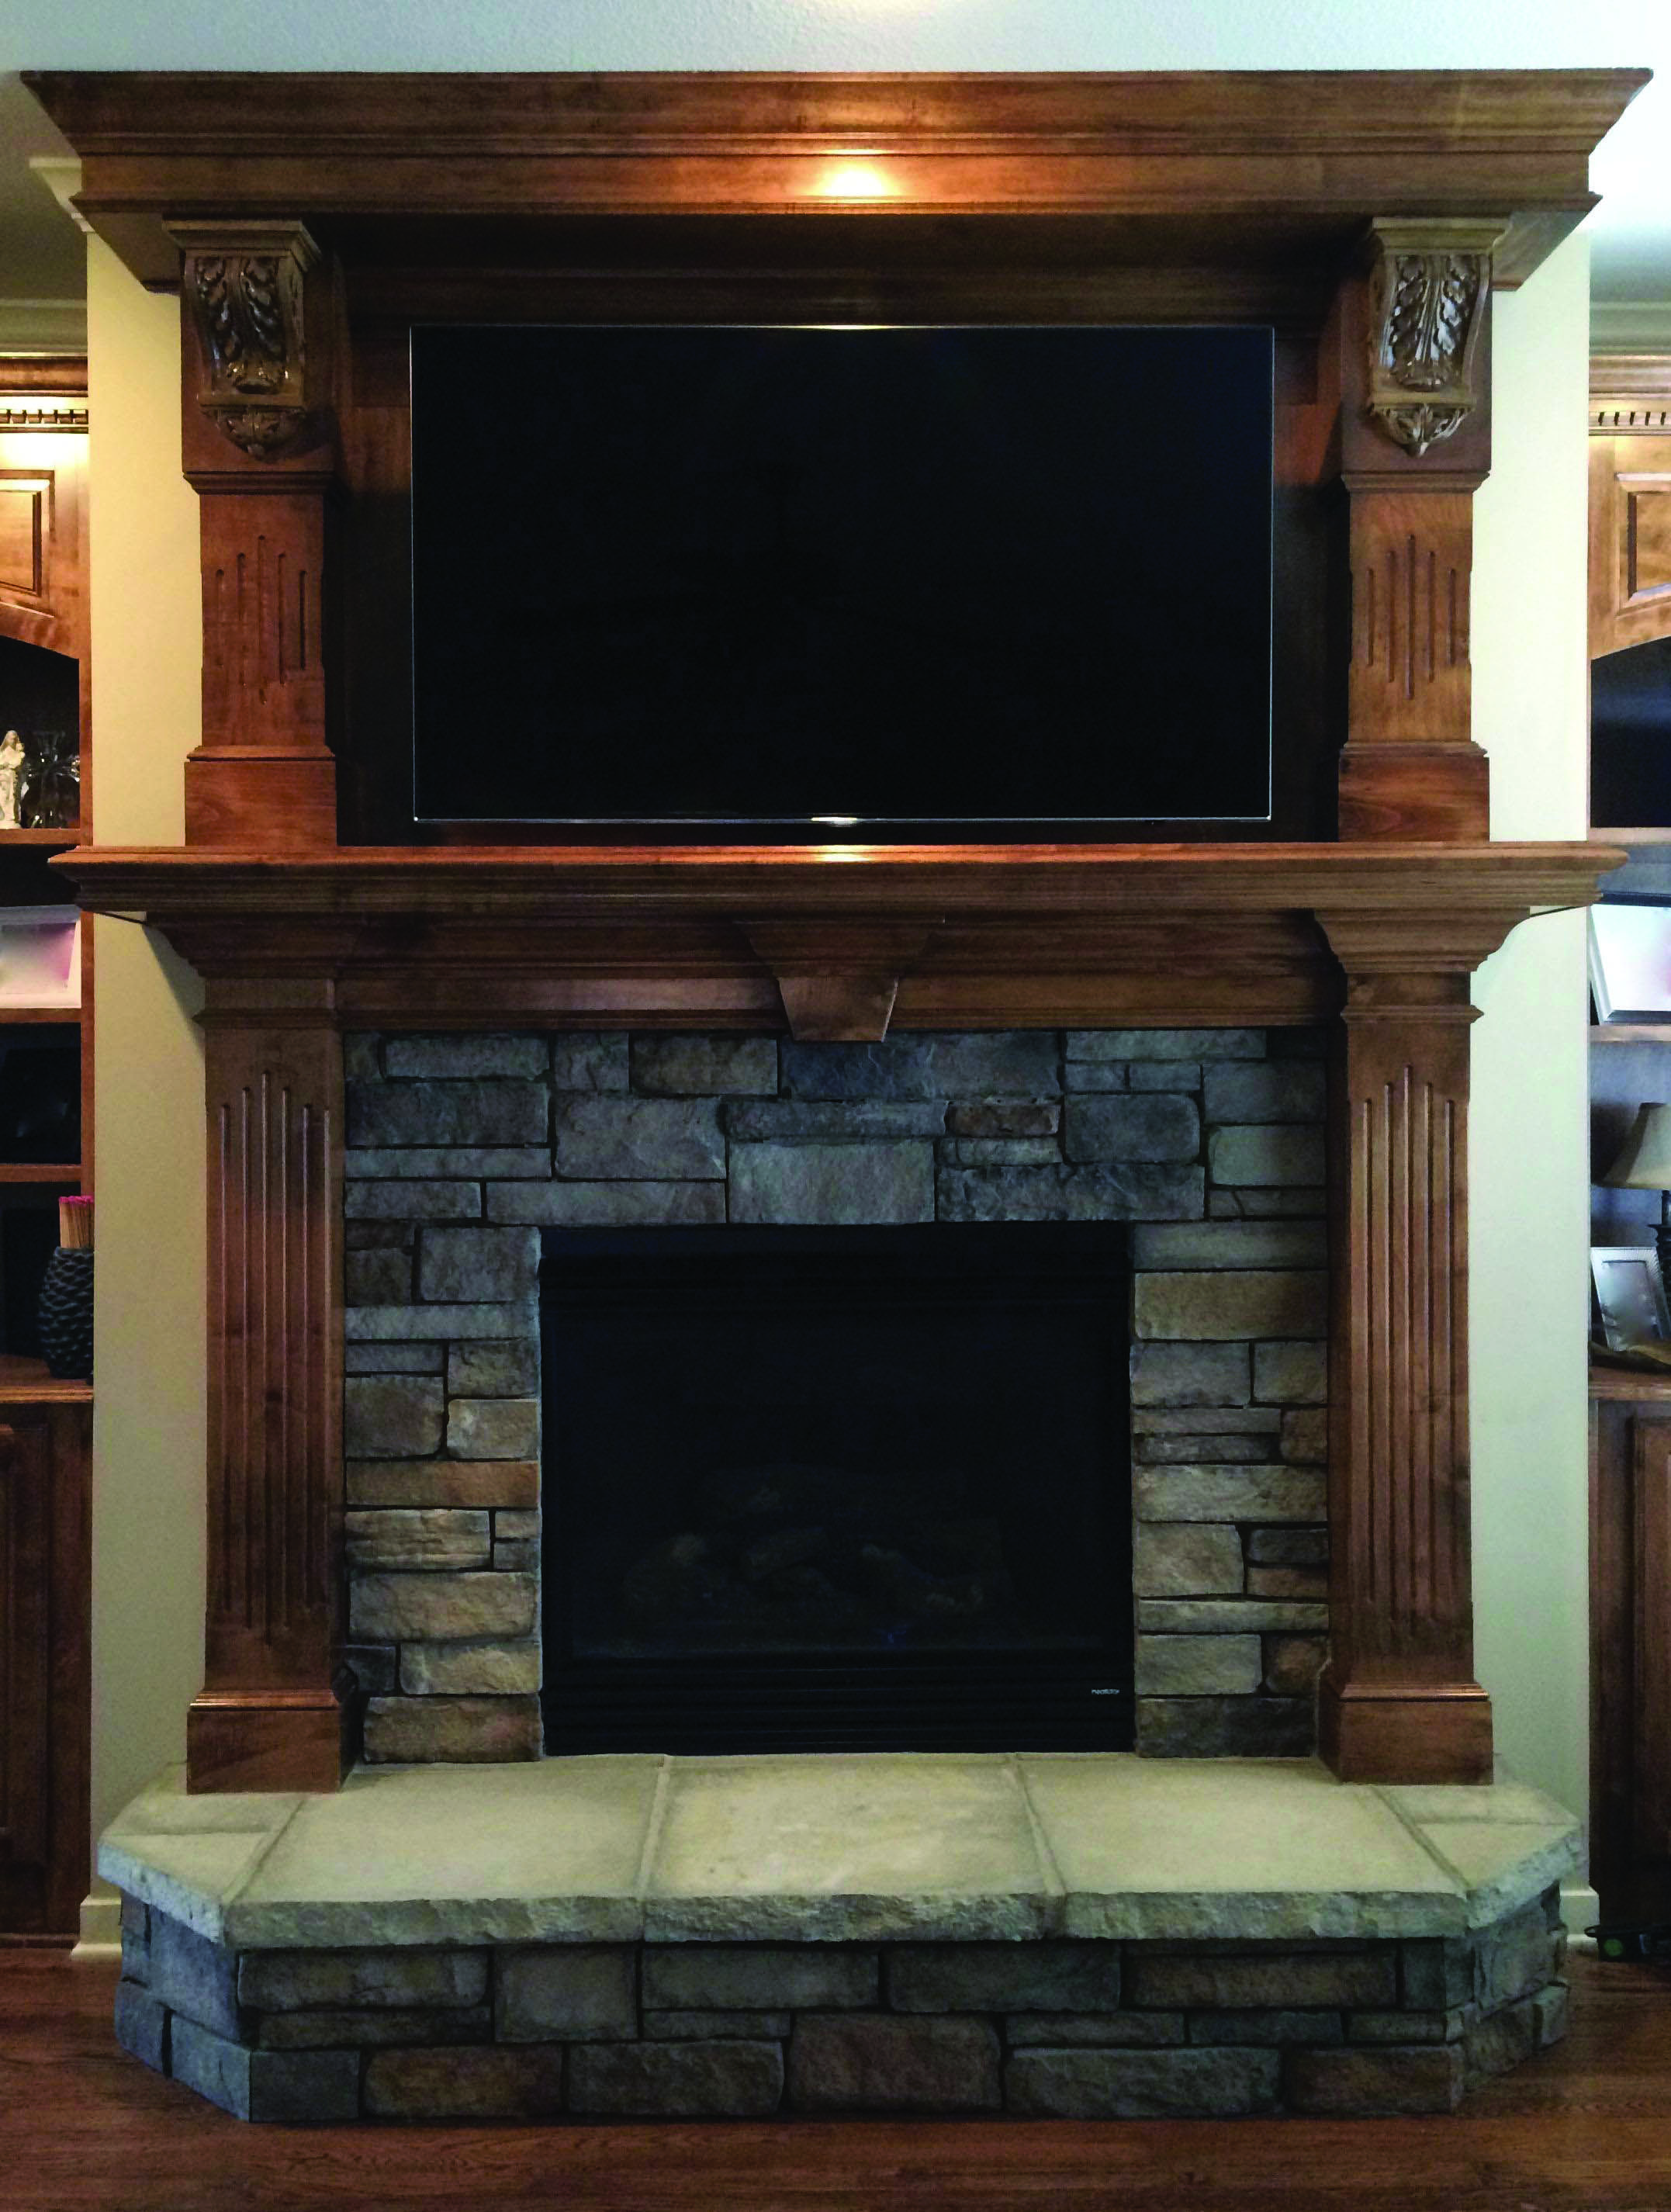 20 stunning fireplace ideas to steal farmhouse fireplace